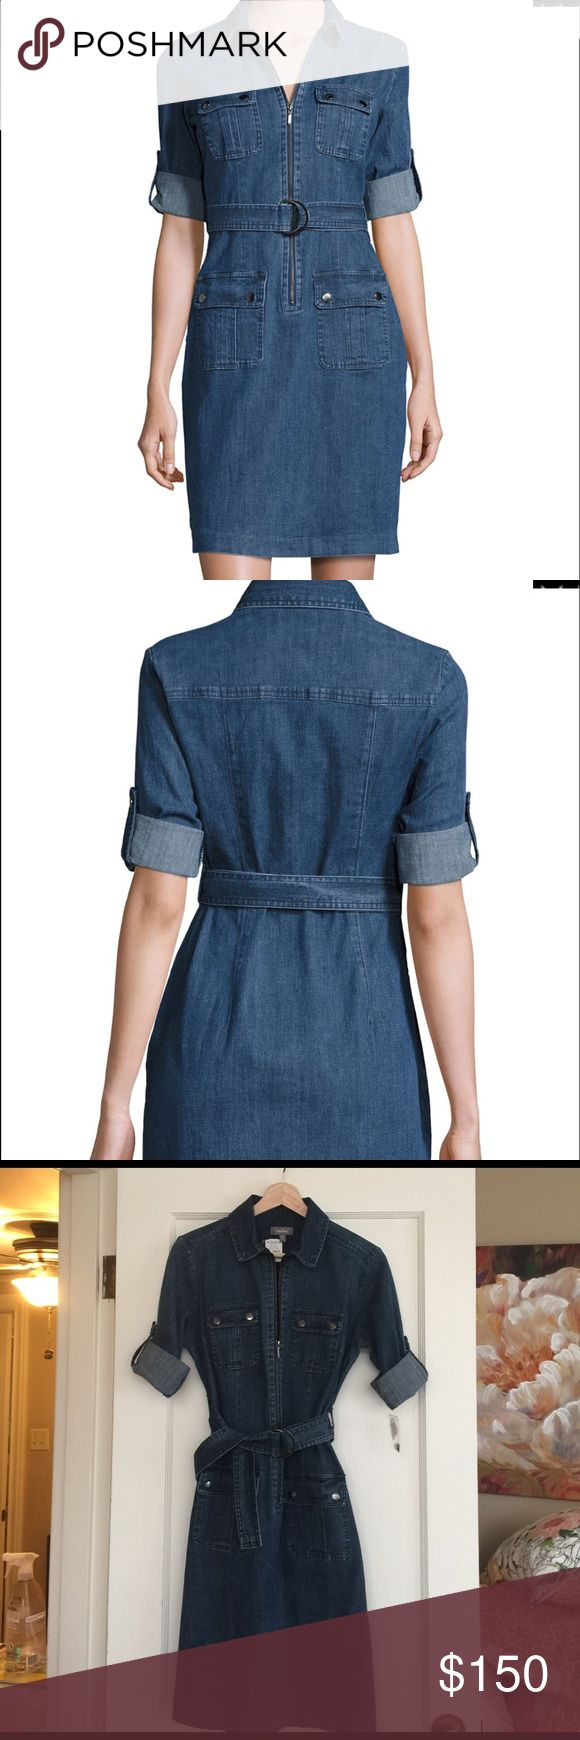 Neimun Marcus denim shirt dress. NWT Rolled sleeve belted shirt dress. There is stretch in the fabric which makes it very easy and comfortable to wear. Neiman Marcus Dresses